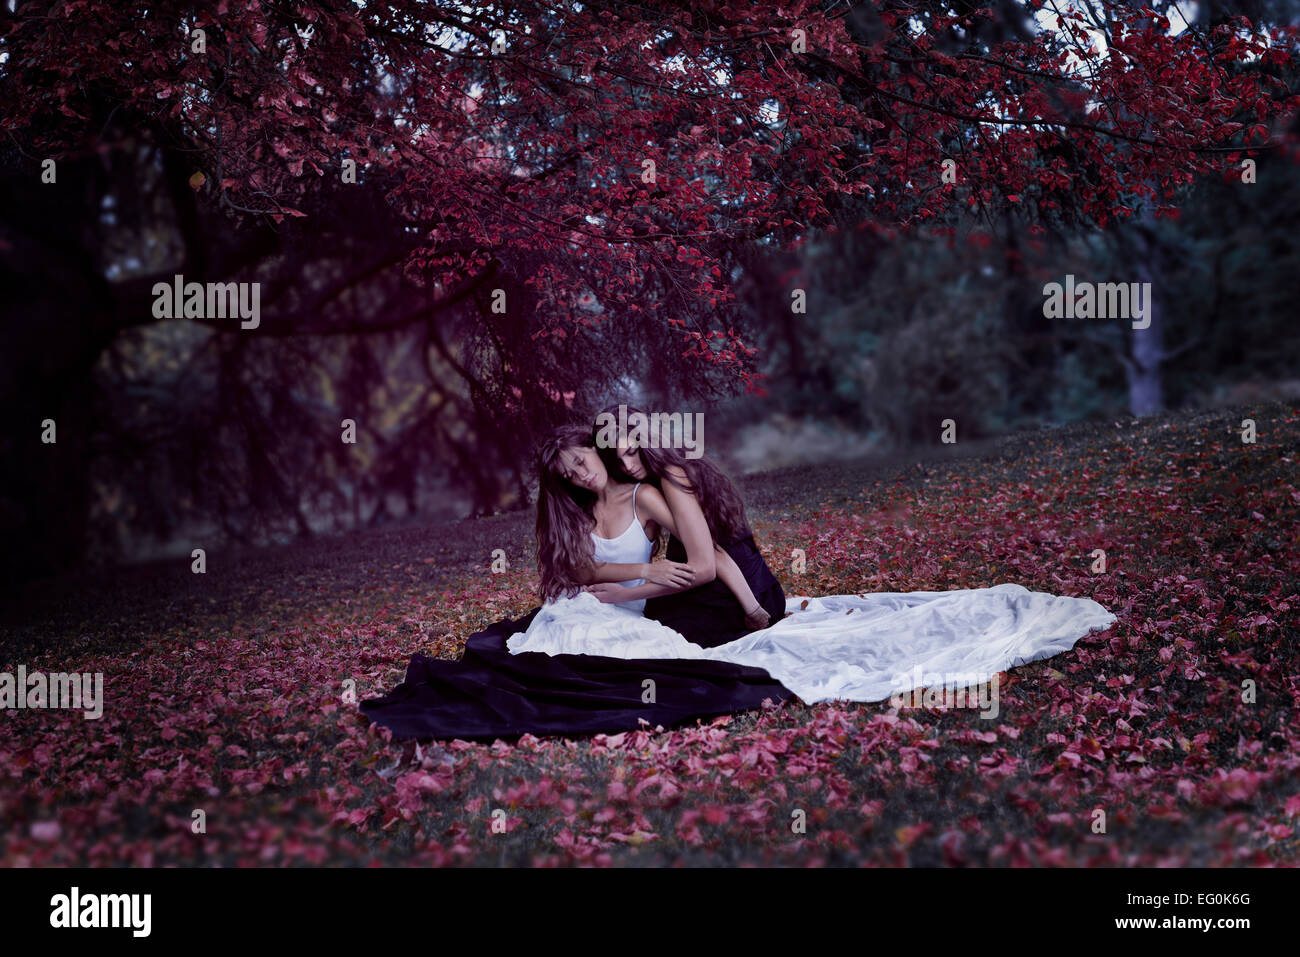 Two young women sitting on blanket Photo Stock